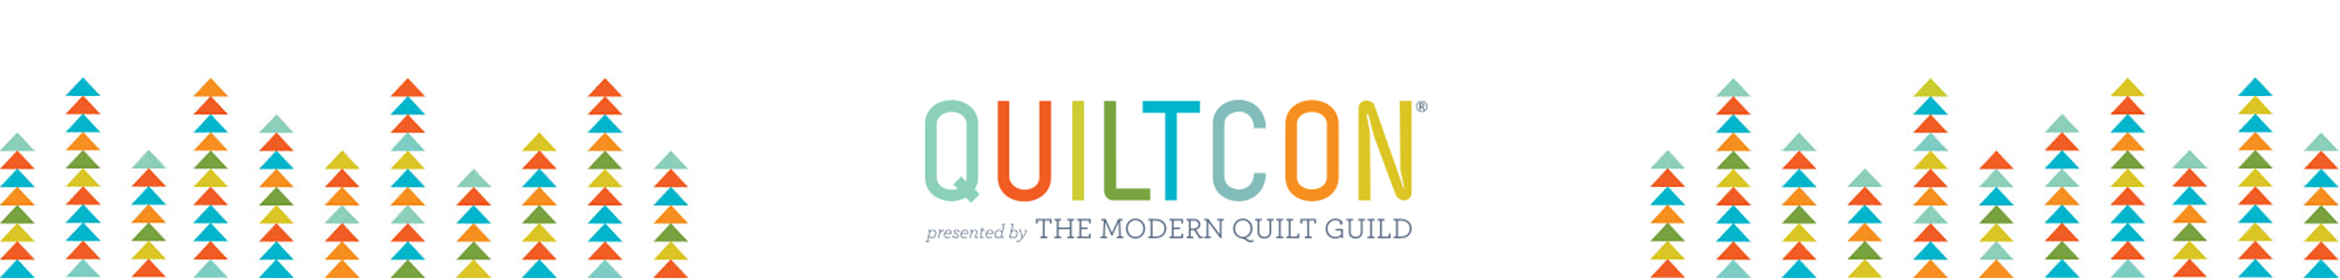 QuiltCon 2020 Main banner